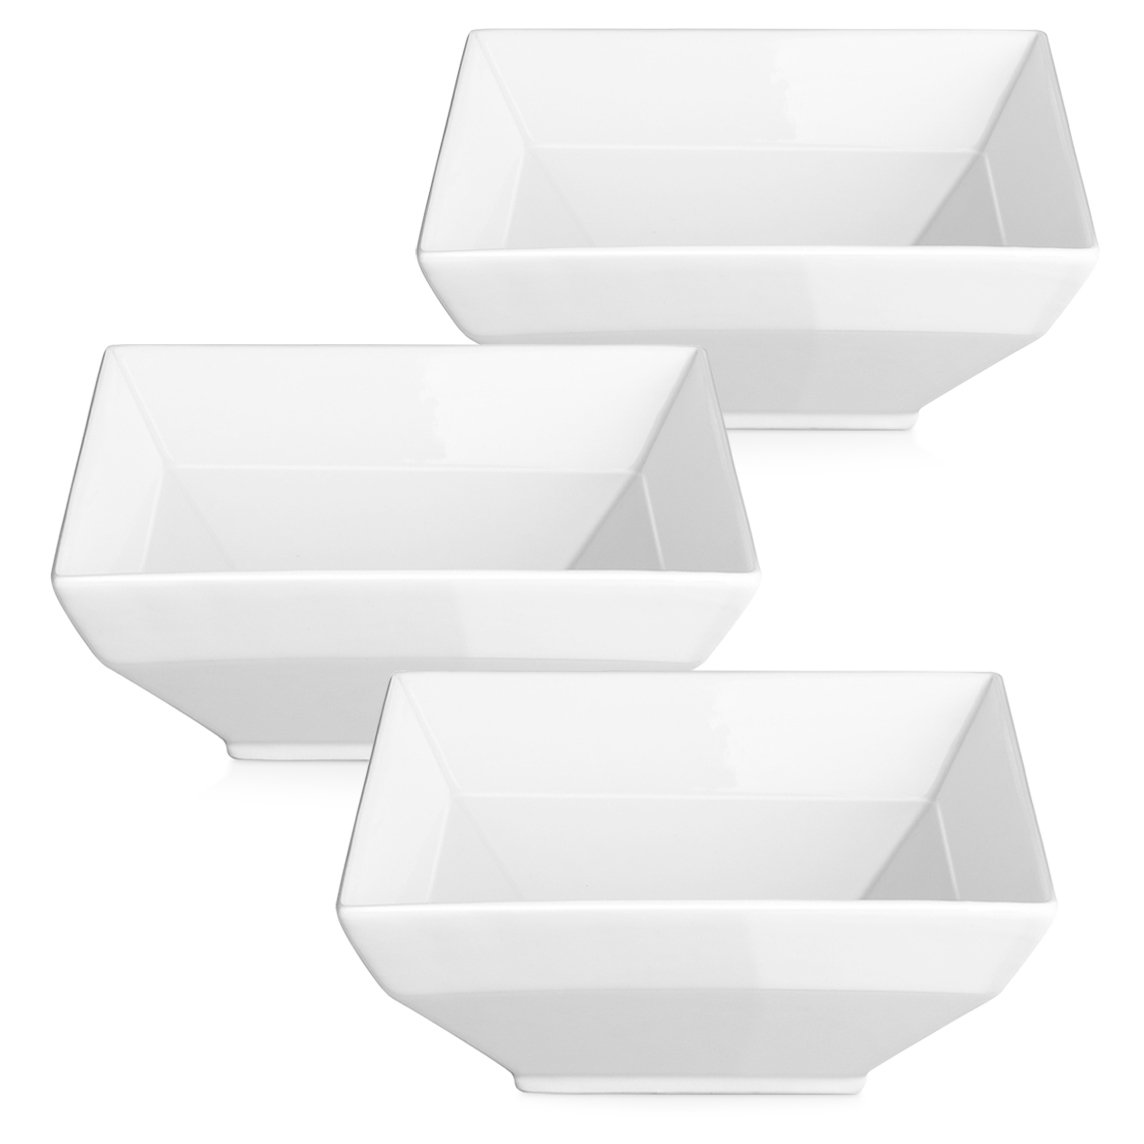 DOWAN Porcelain Soup/Cereal Bowls, White Square Bowl Set, 24-Ounce, Set of 3